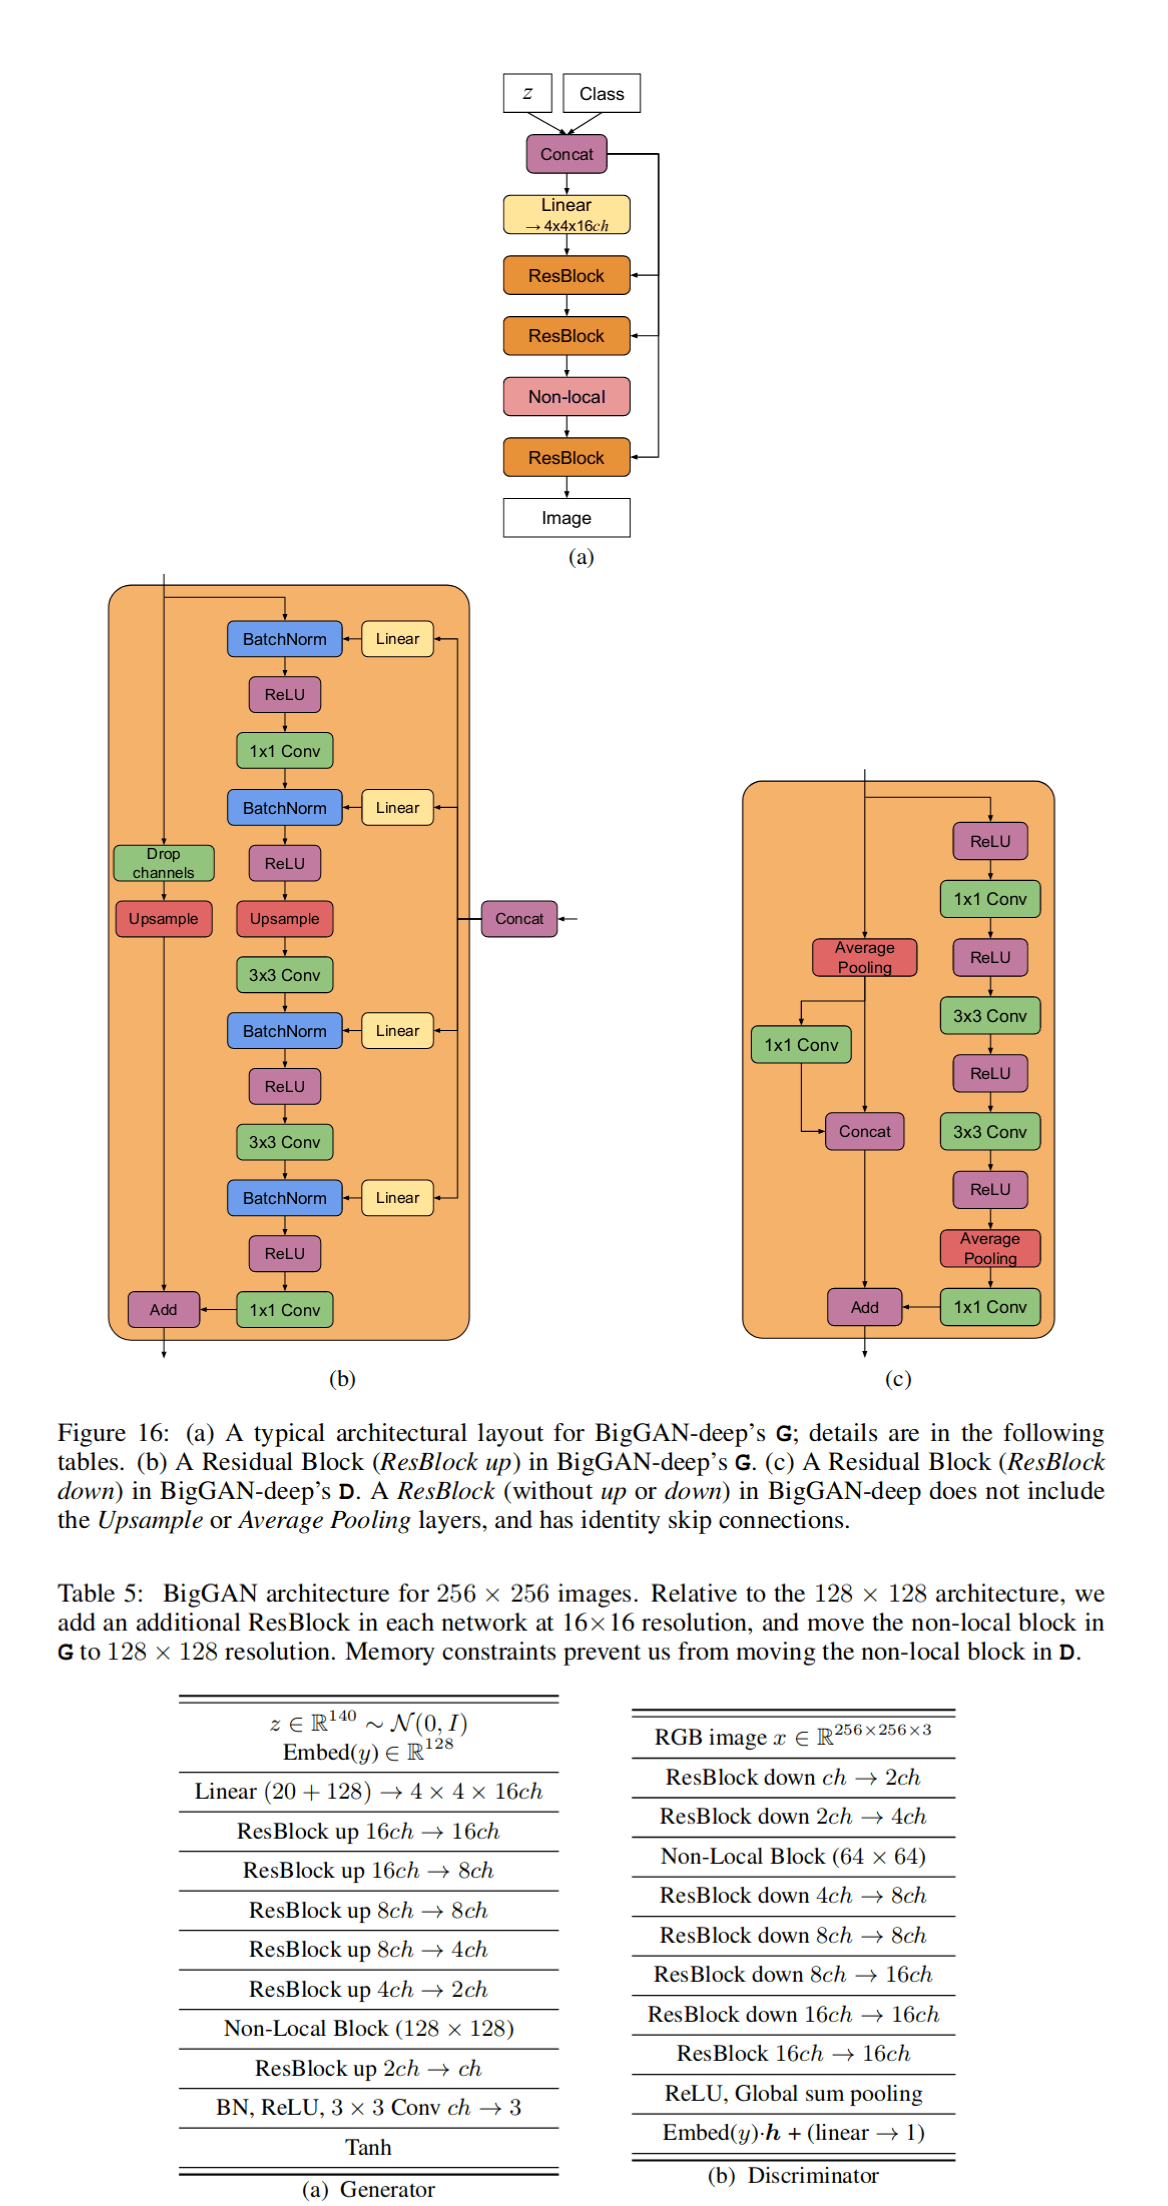 Brock et al 2018: BigGAN-deep architecture (Figure 16, Table 5)